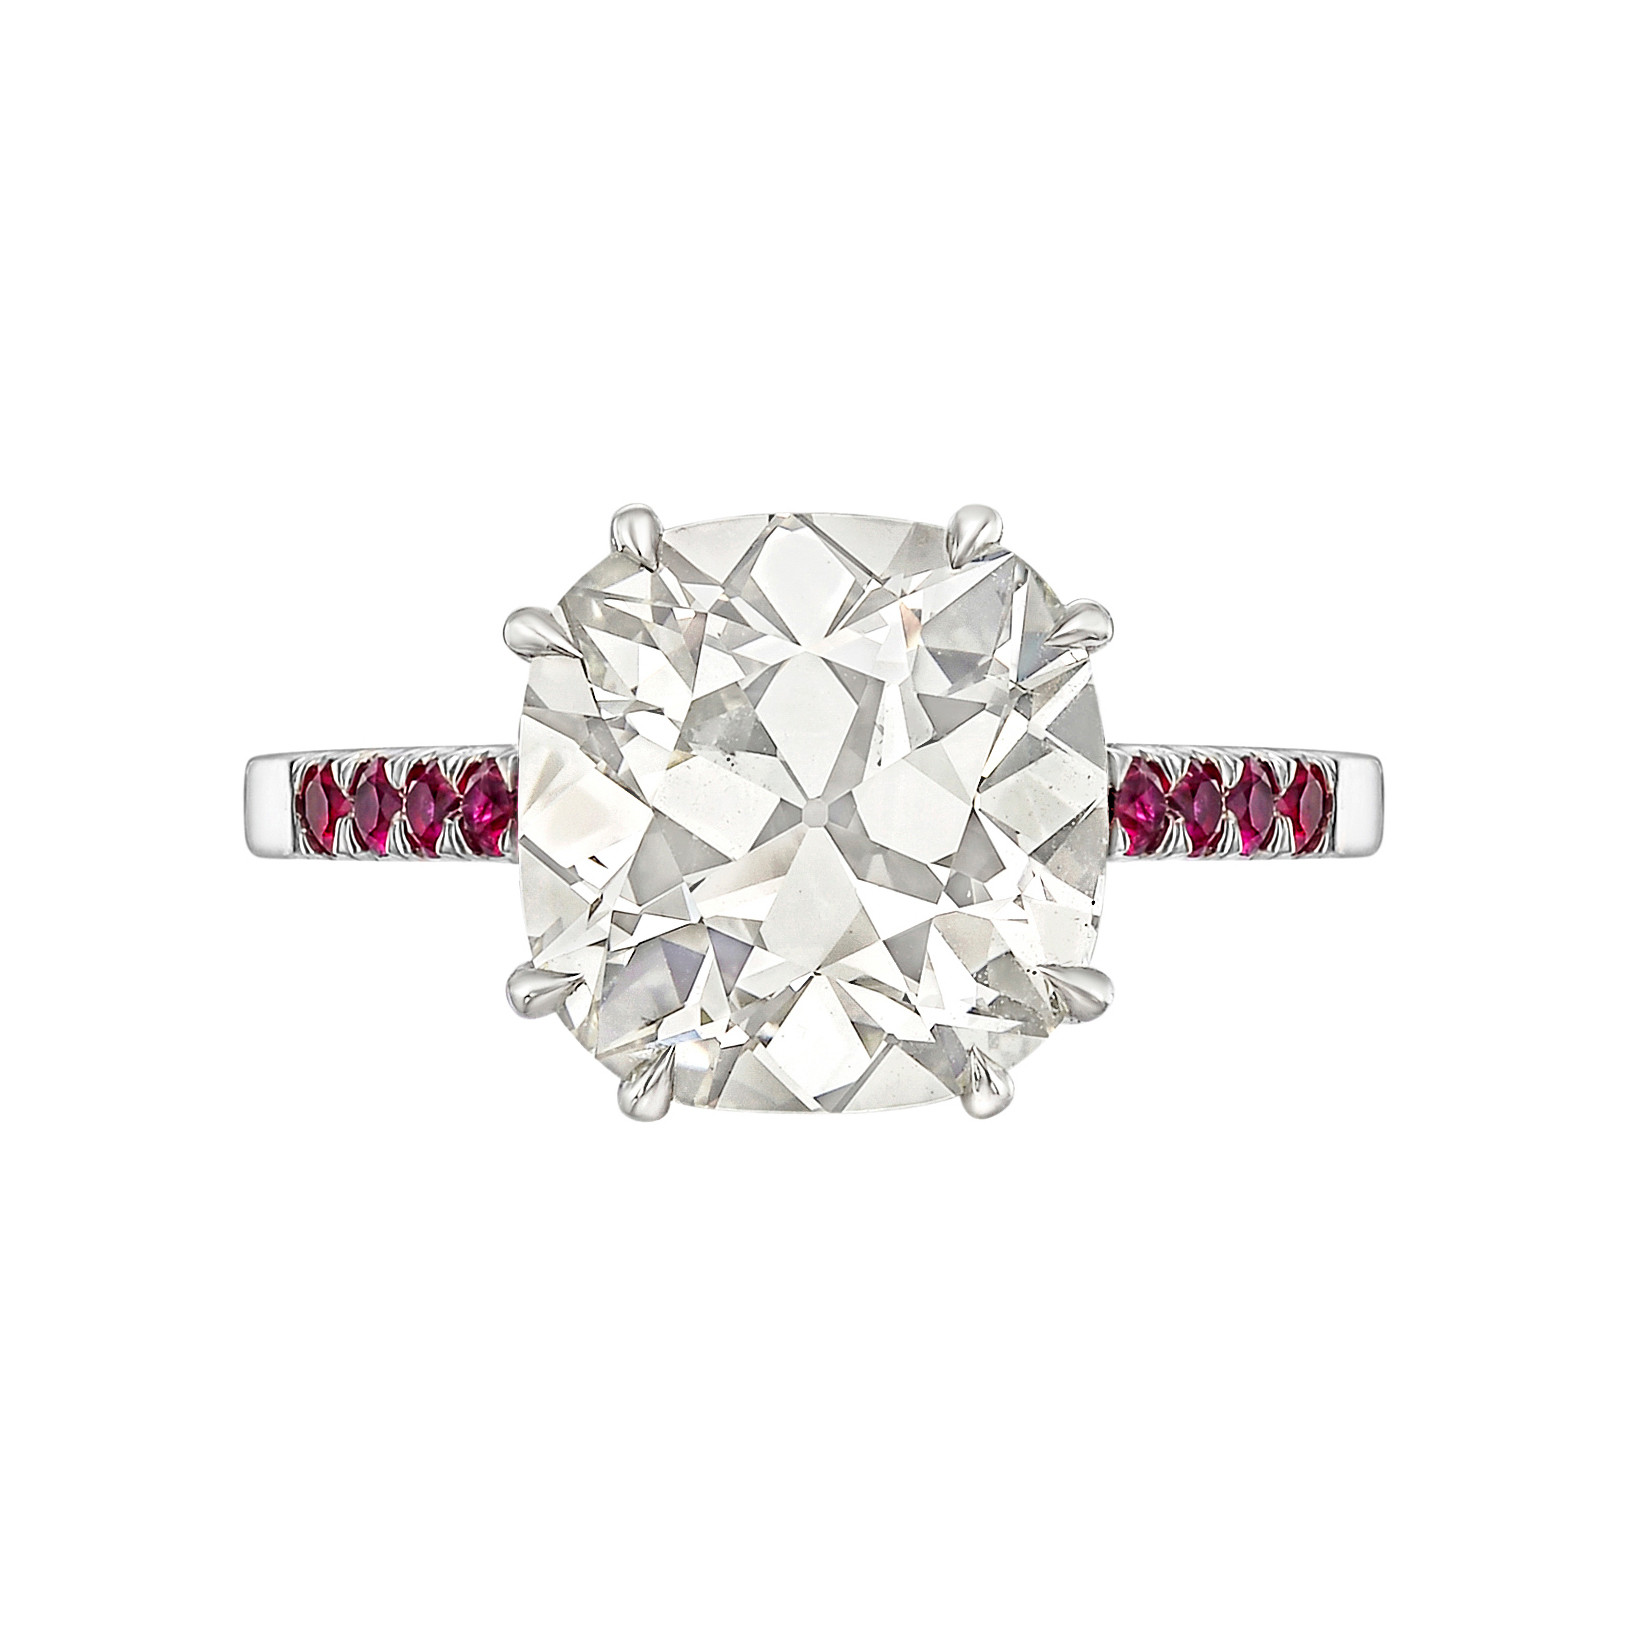 4.44ct Cushion-Cut Diamond Ring